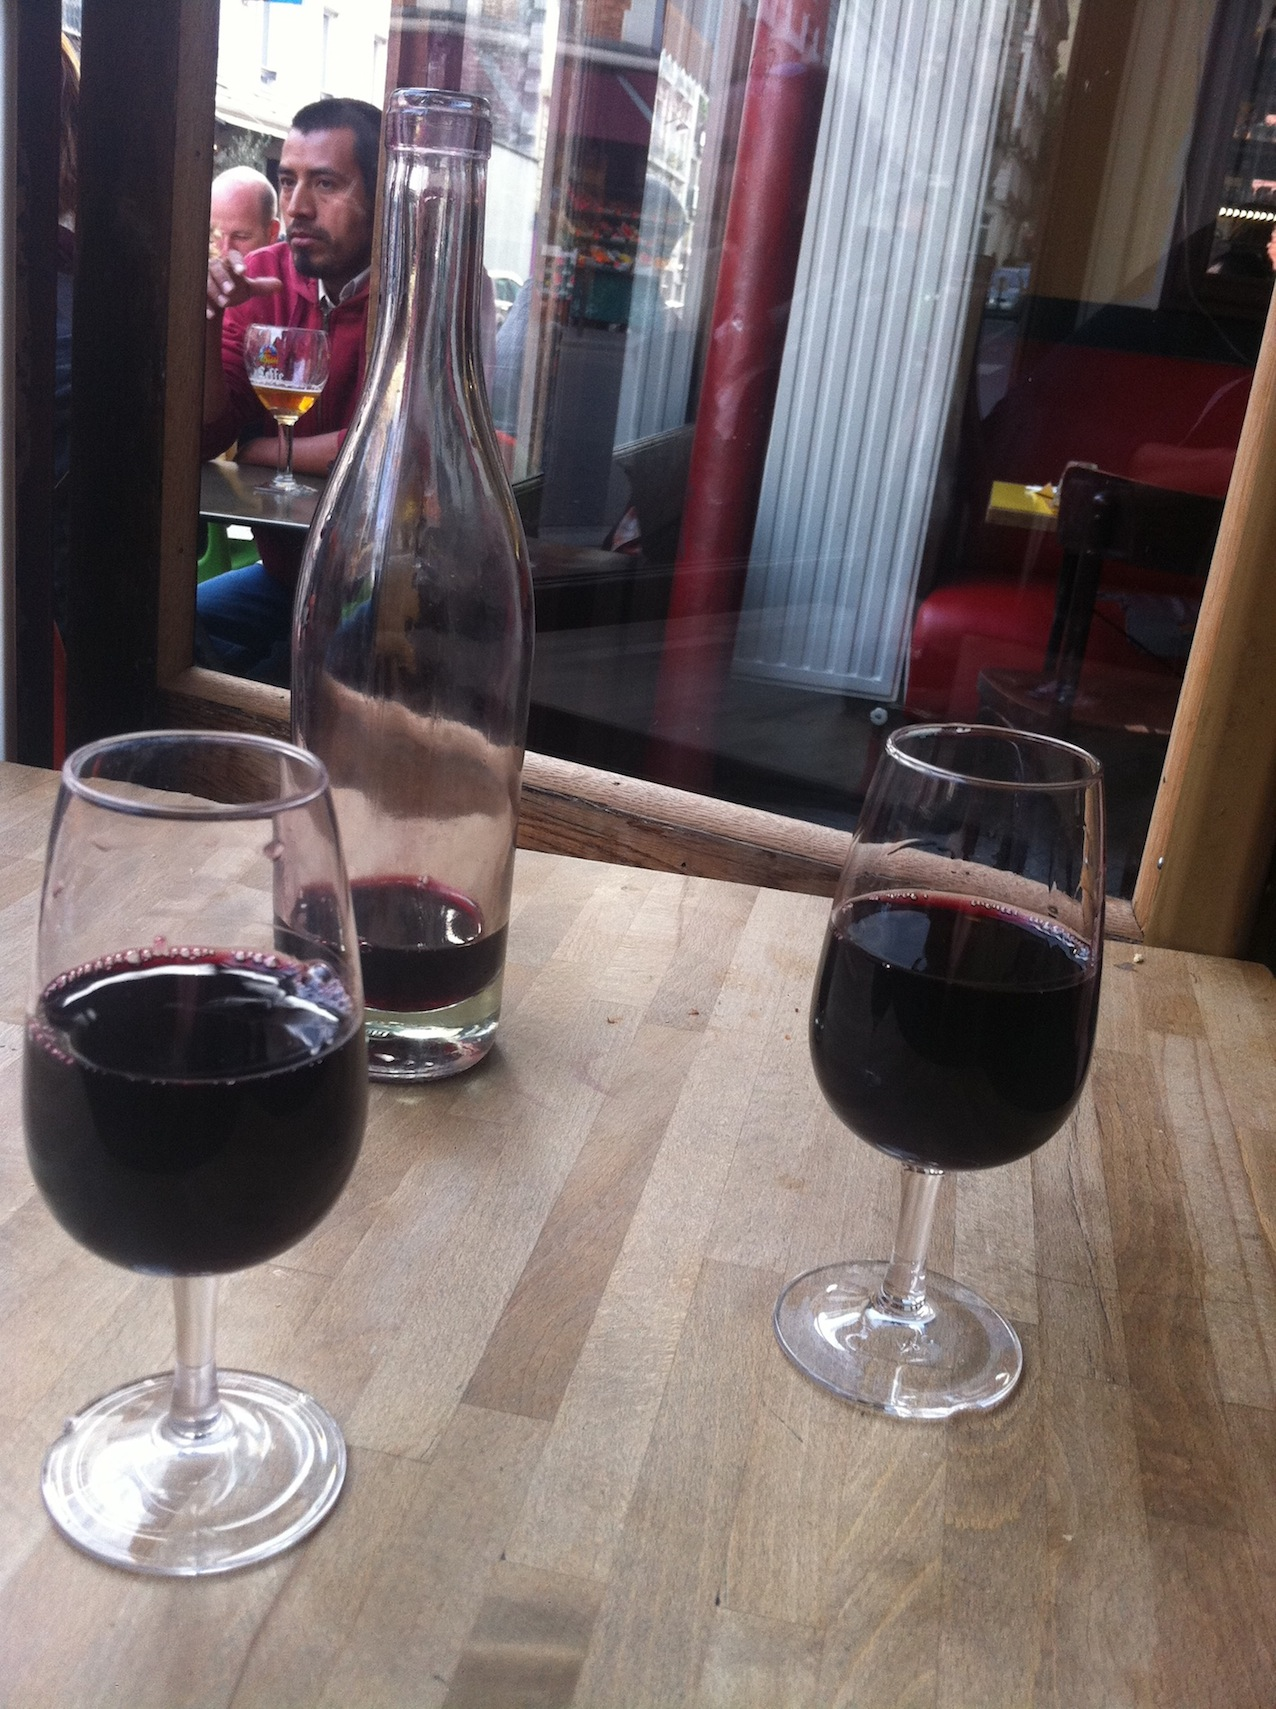 Natural wine is served by the glass, or in different sizes of carafes